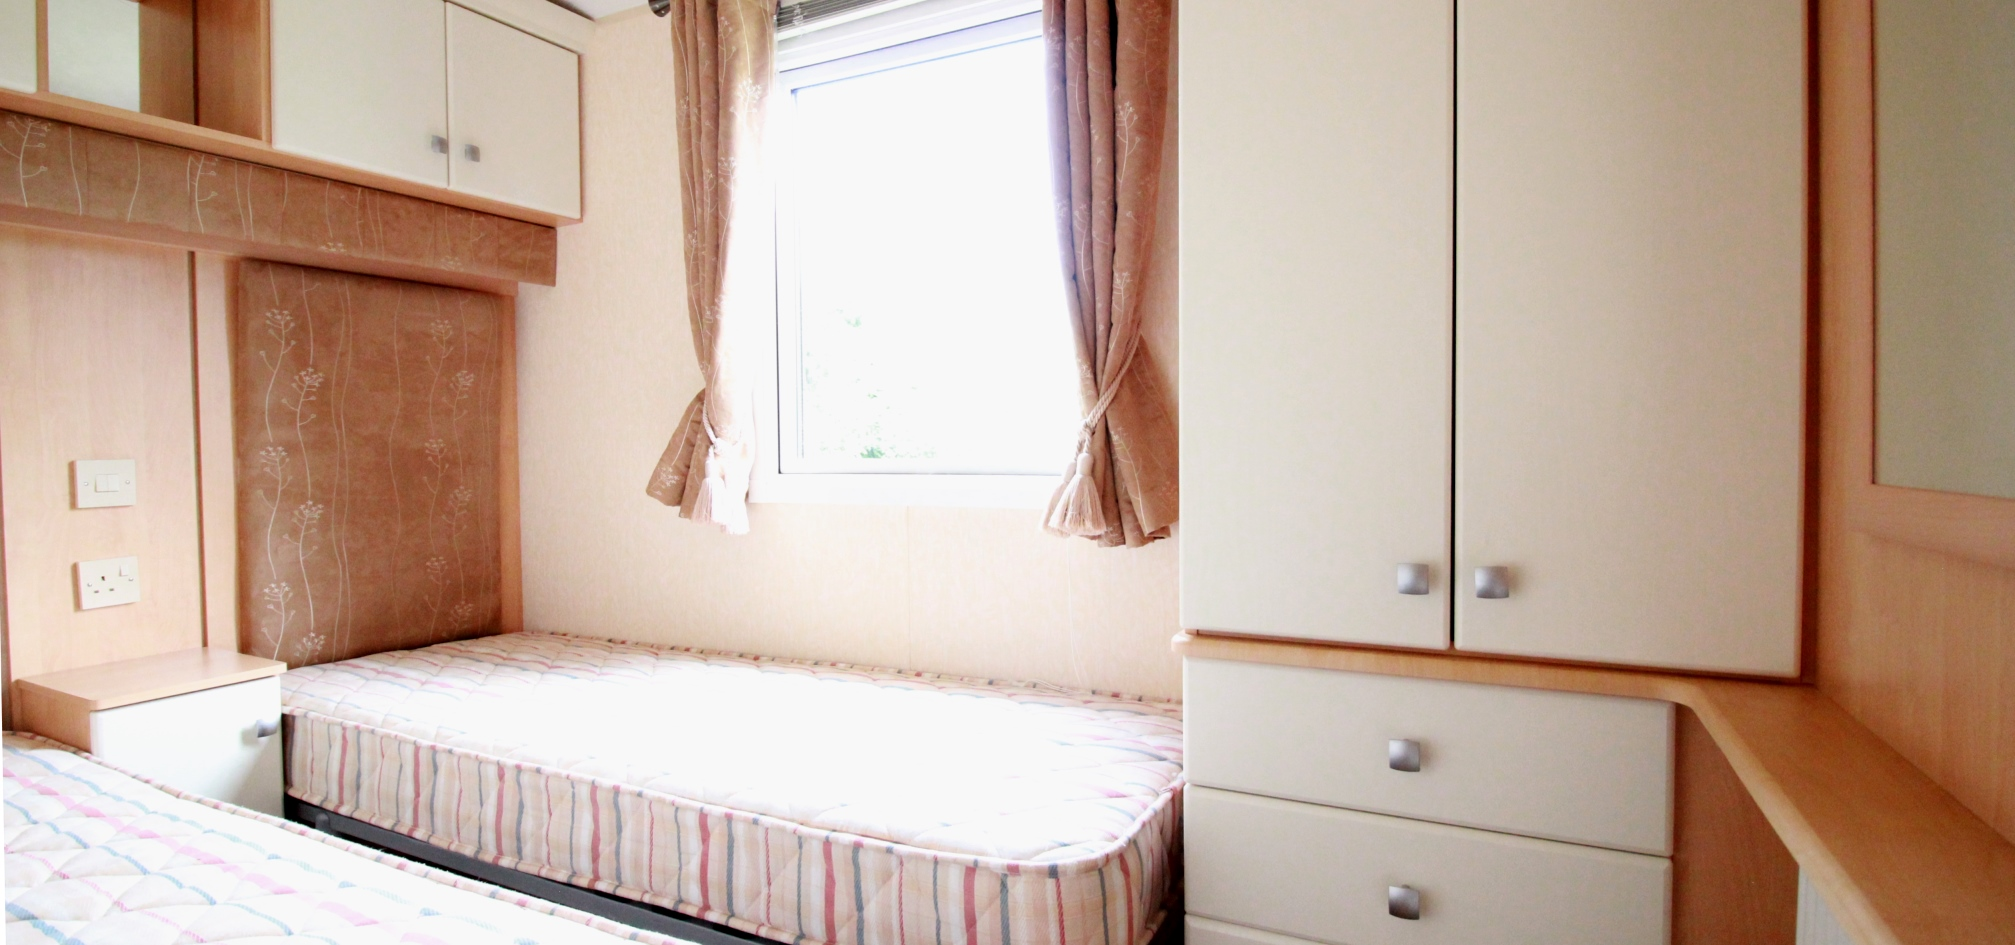 view of a twin room with identical single beds without duvets and covers